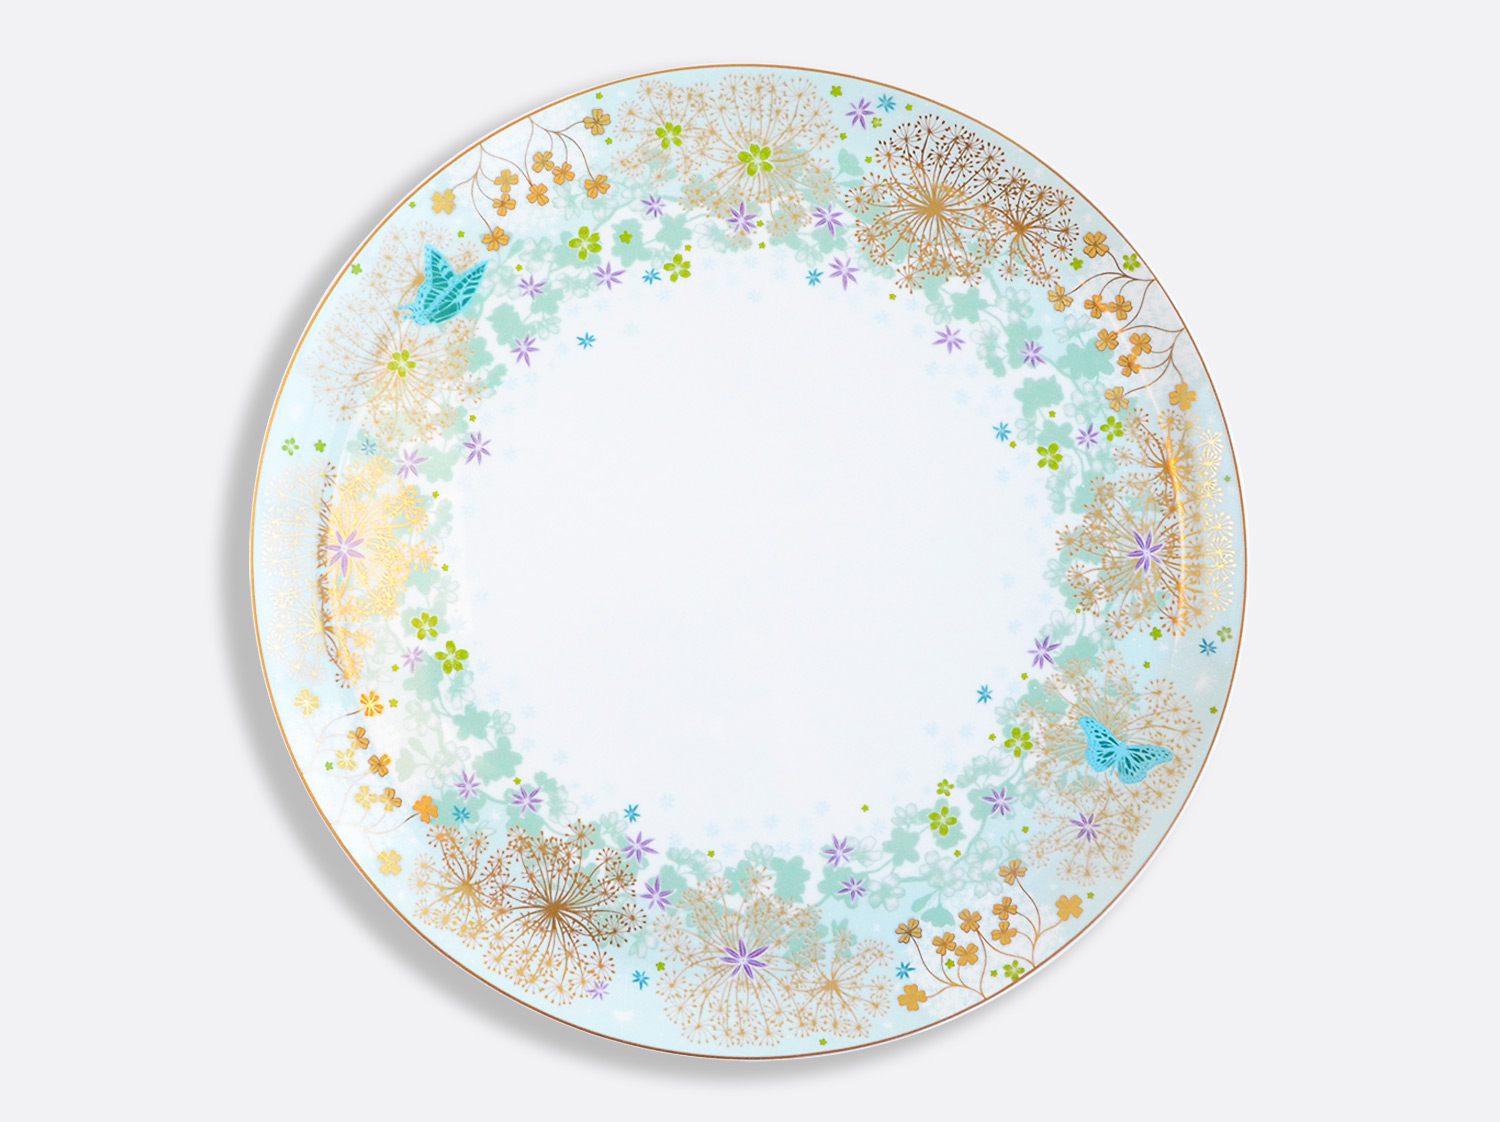 Plat à tarte 32 cm en porcelaine de la collection FÉERIE - MICHAËL CAILLOUX Bernardaud